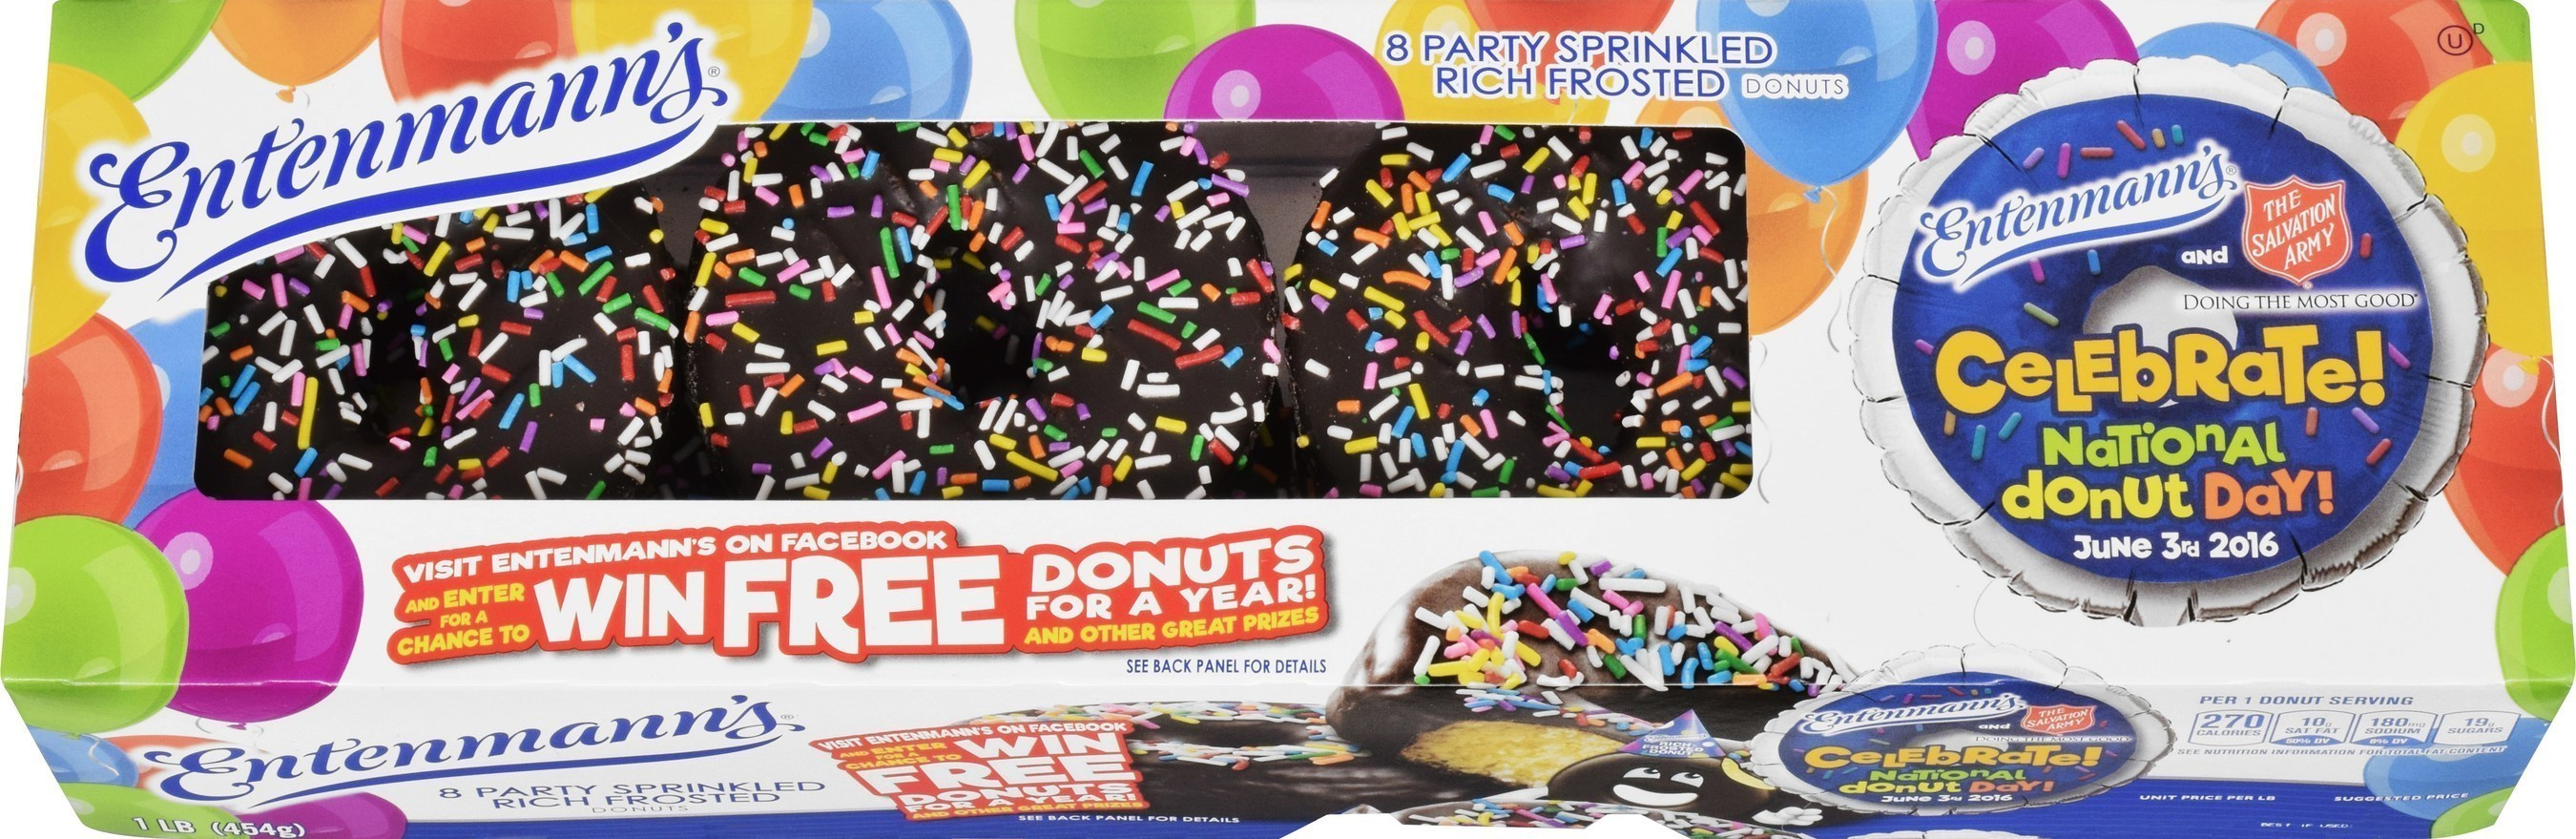 """Entenmann's(R) And The Salvation Army Are Having A Big Party To Celebrate 2016 """"National Donut Day"""" June 3rd With New Rich Frosted Party Sprinkled Donuts"""